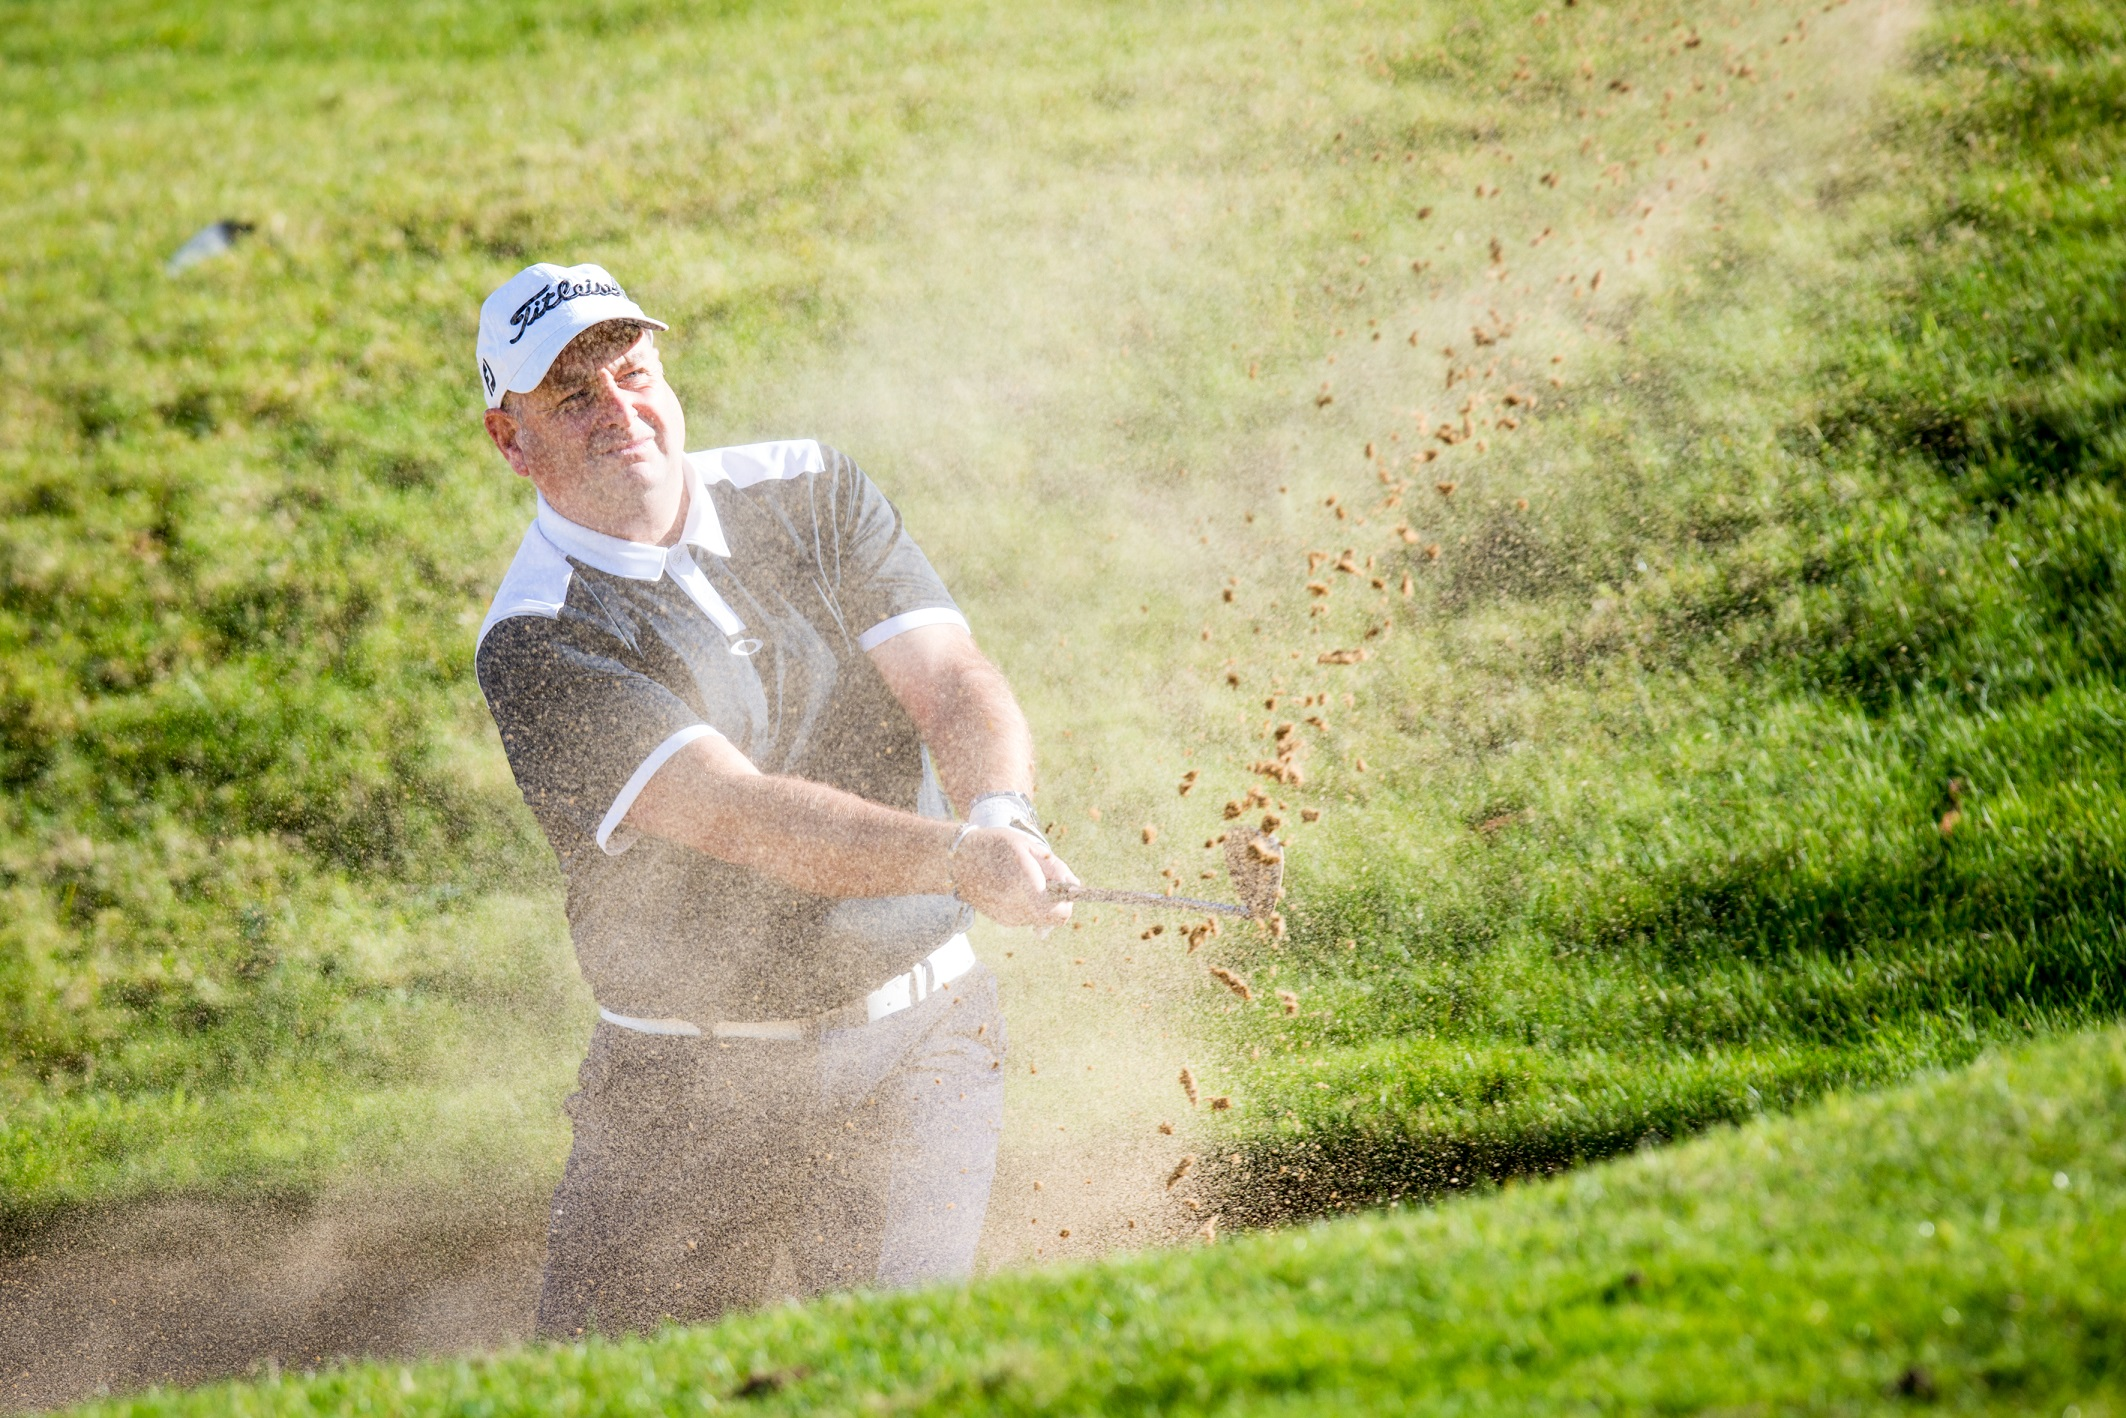 The Golf Classic Final Approaches